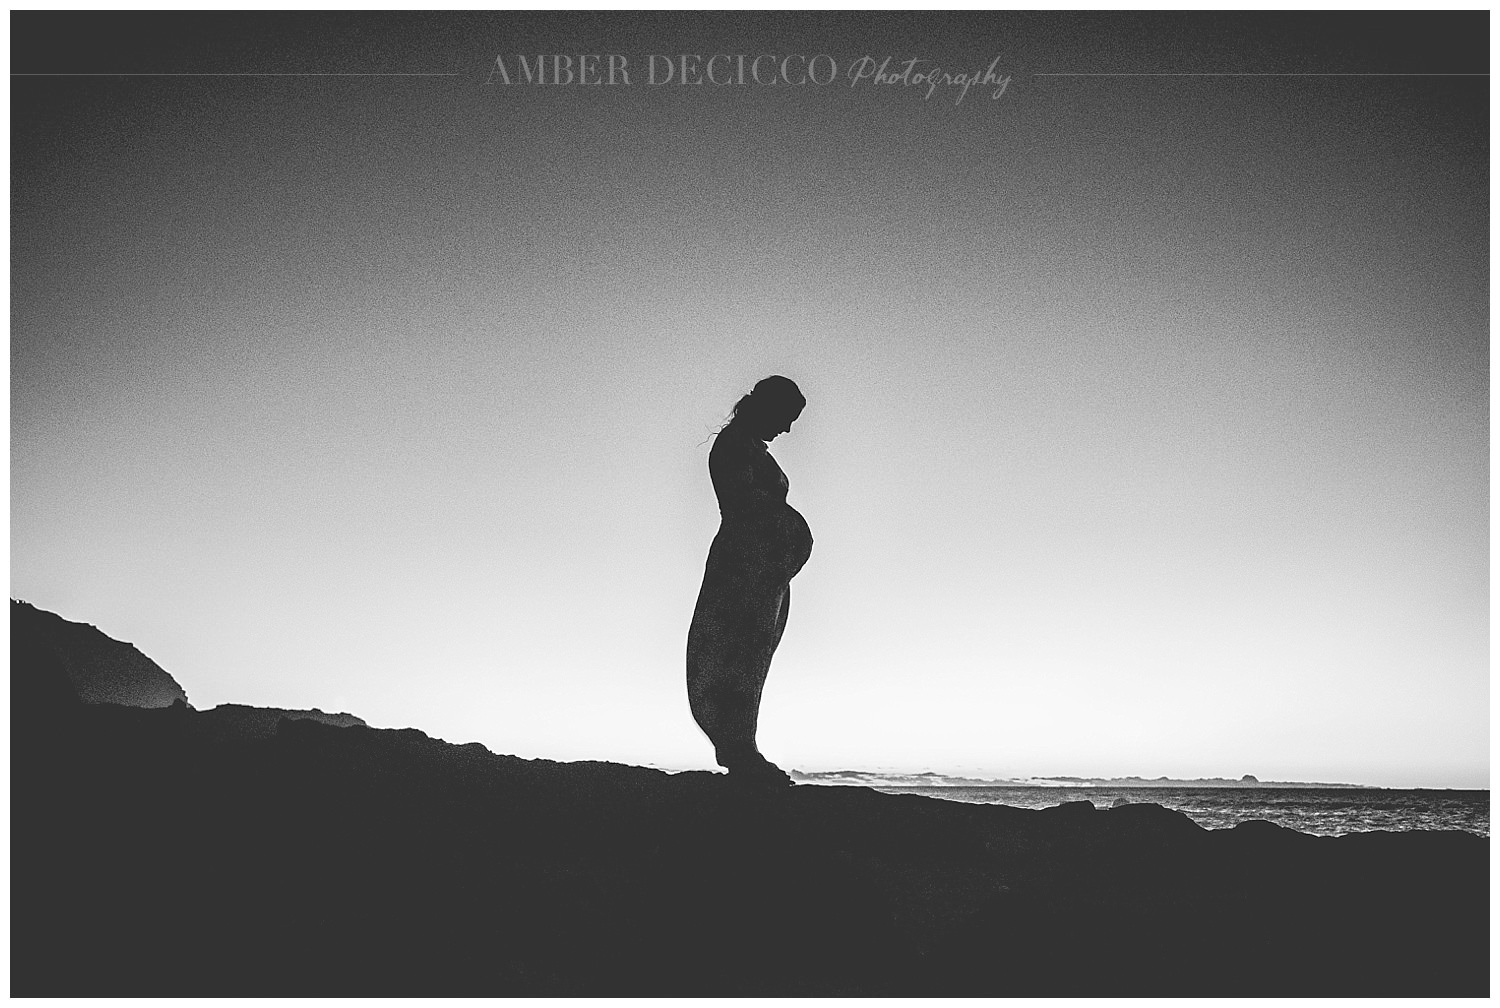 sillhouette-maternity-photograph-amber-decicco-photography